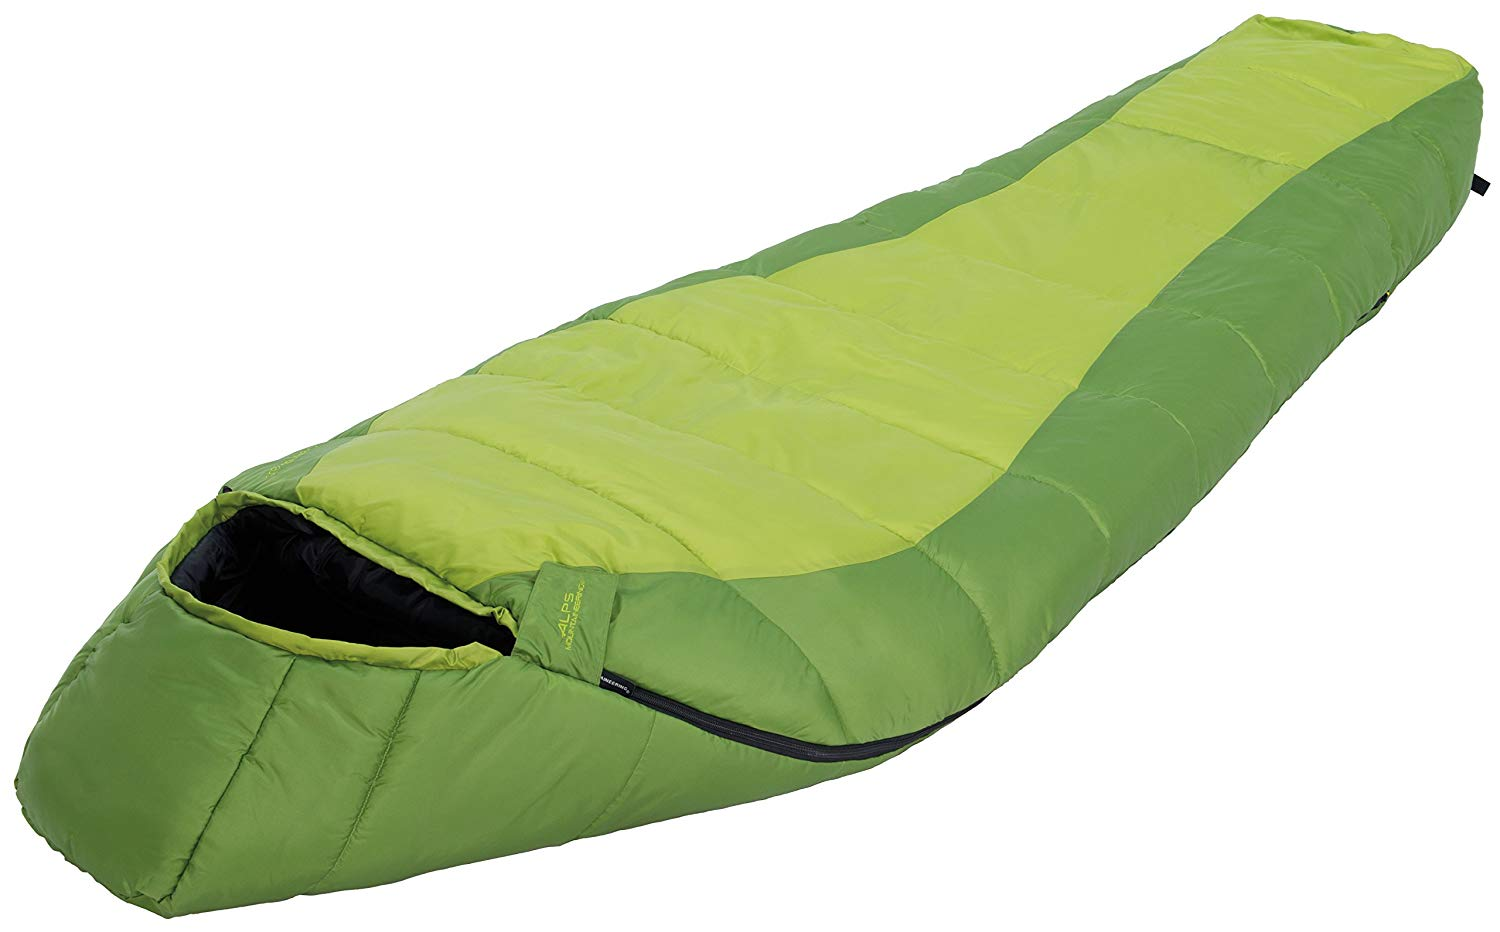 ALPS Mountaineering Crescent Lake 0-Degree backpacking sleeping bag